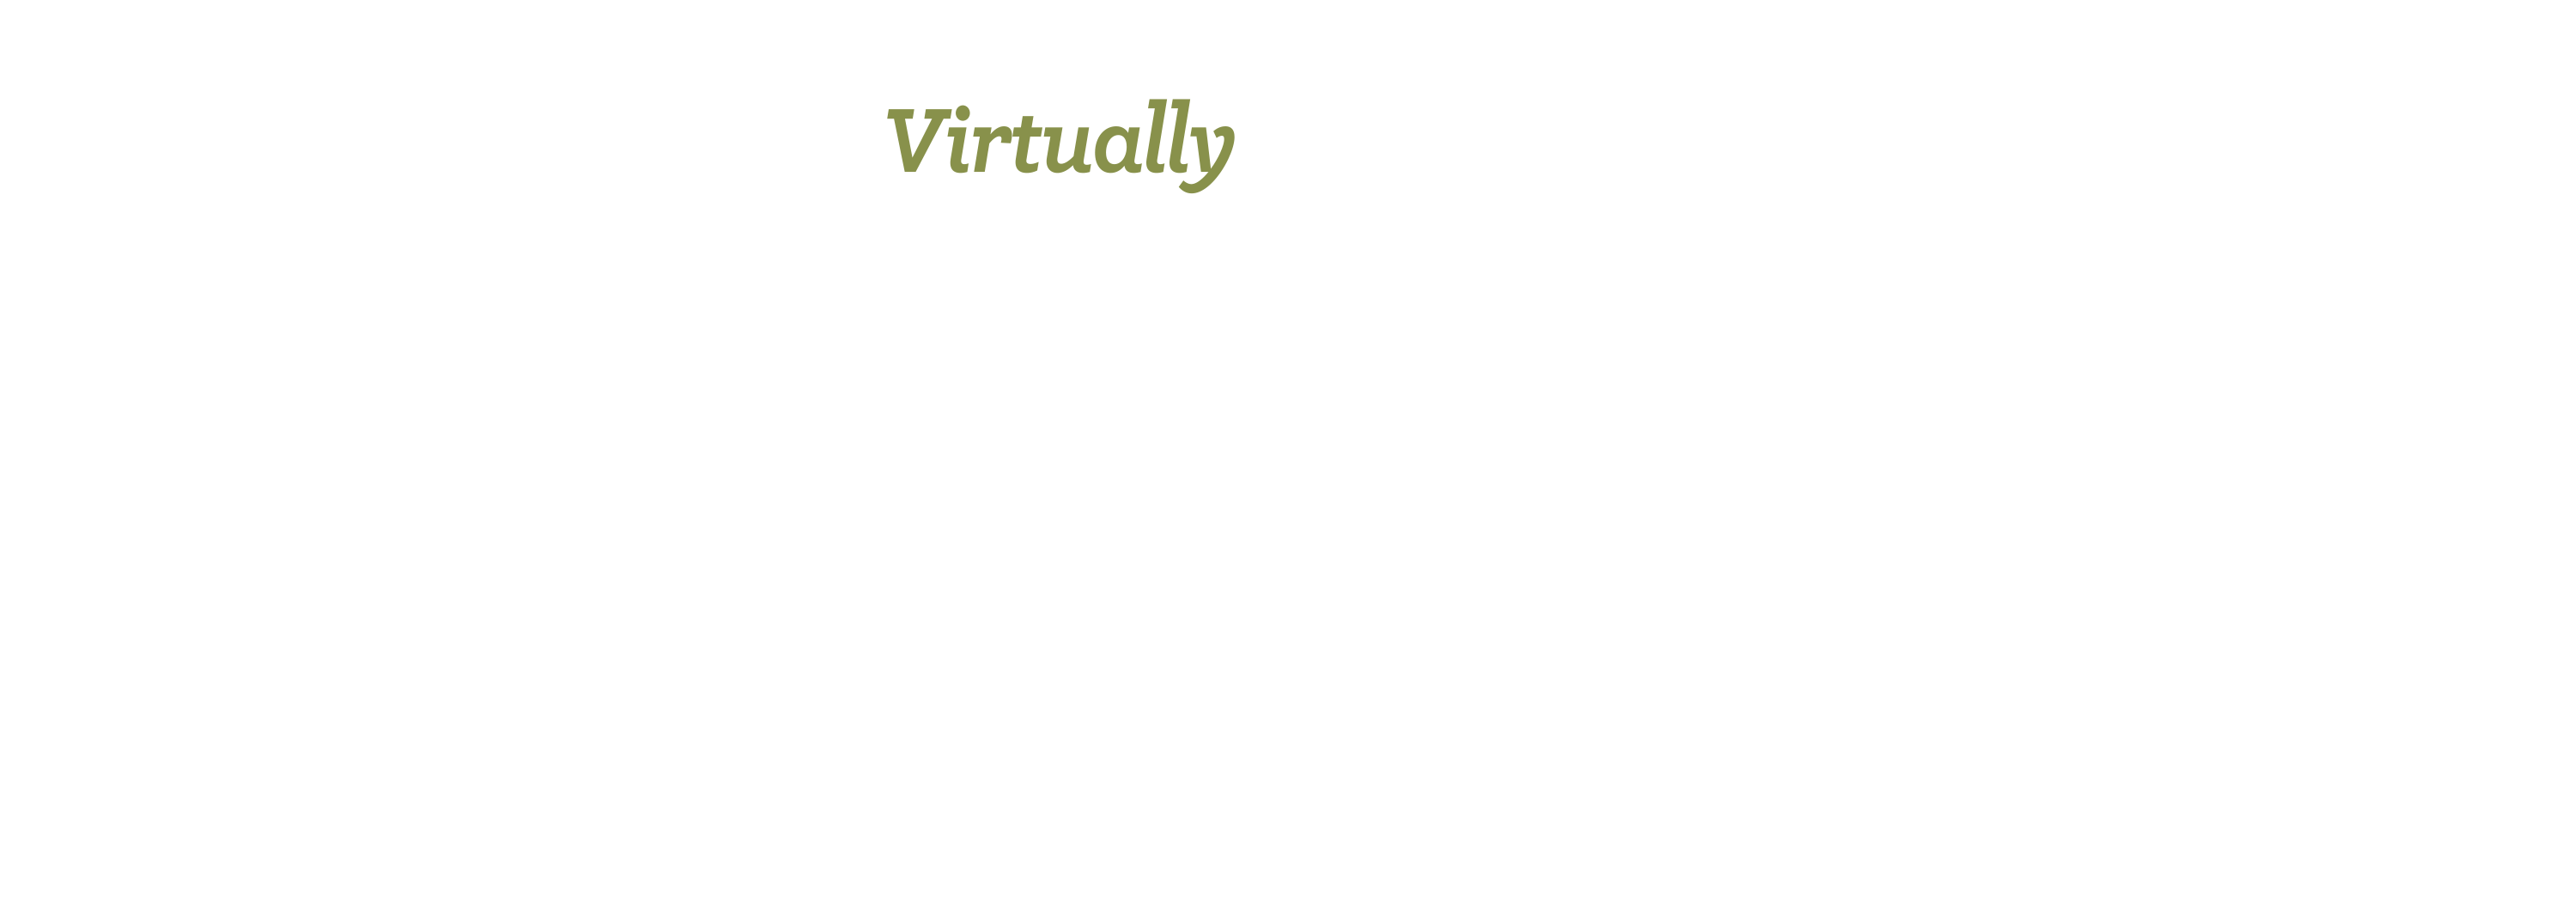 marquis-issuu-07-2018-slider2.png